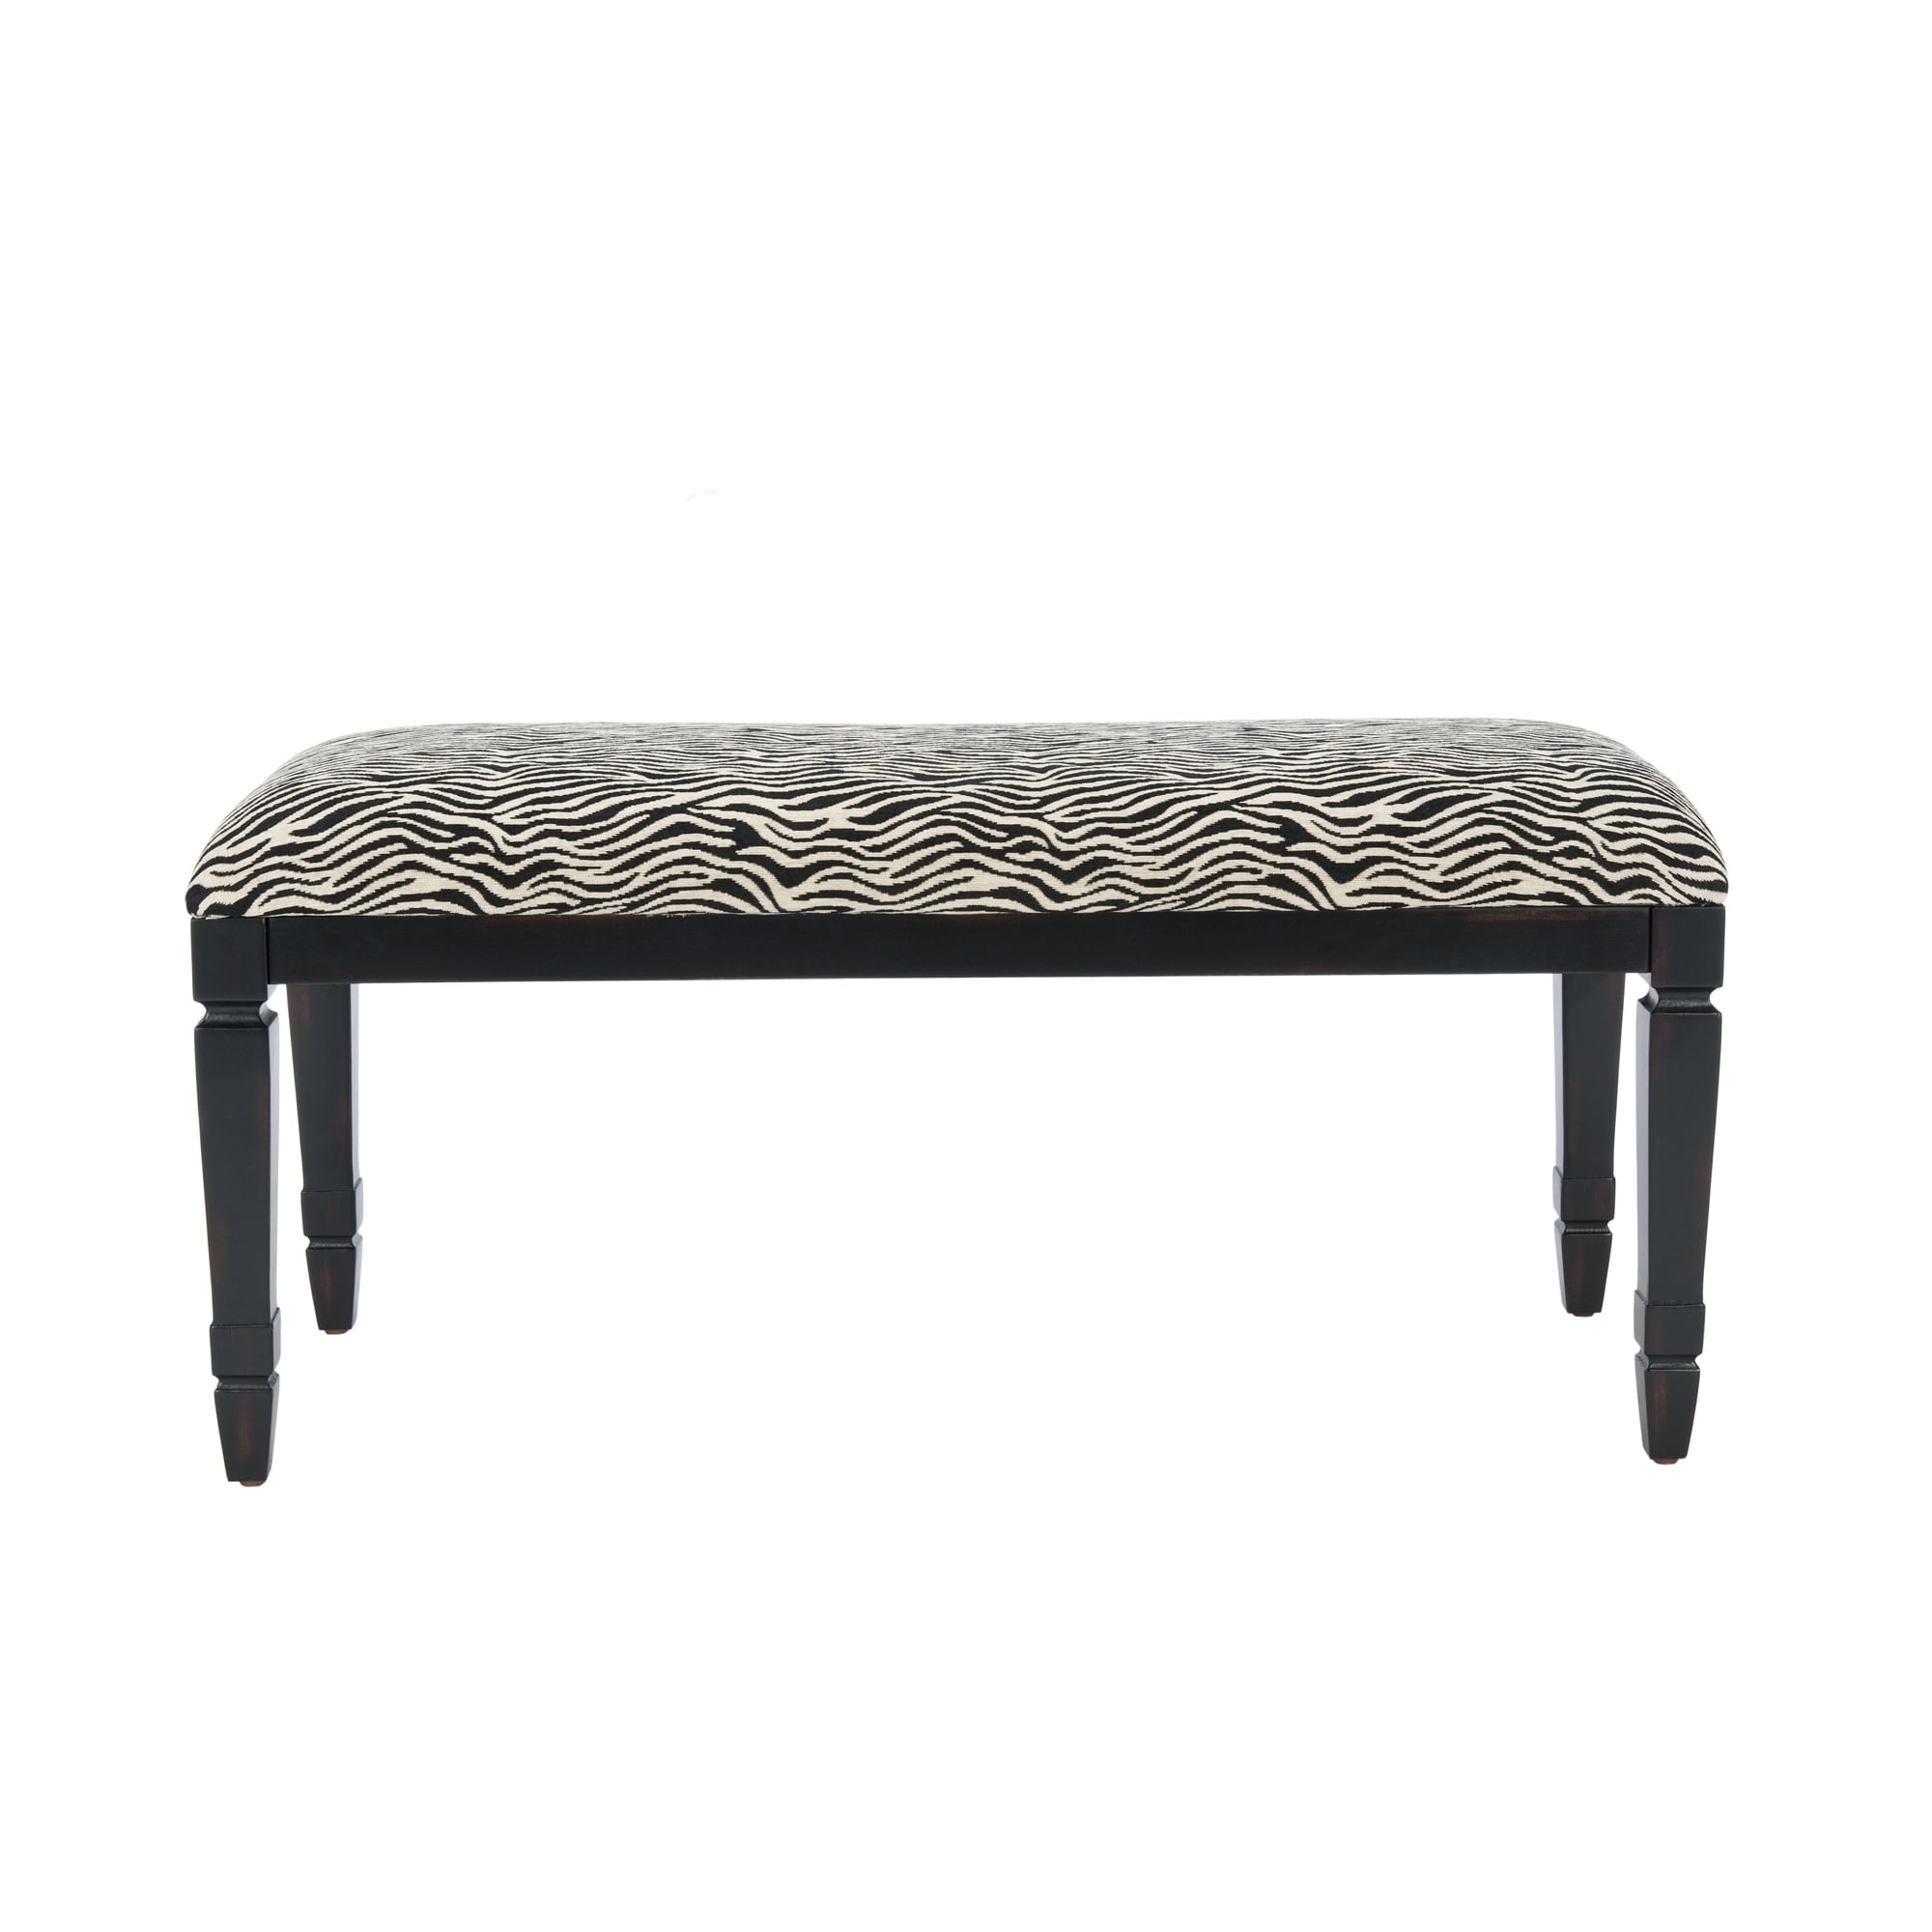 ottoman bookshelf of plus size banquette s nails foyer corner hack open the brown window image design elegy bench leopard together applaro for stylish clayton as benches build interior drawers ideas catchy wells bathroom to grand storage patio how ikea accent dining full furniture with collection lear